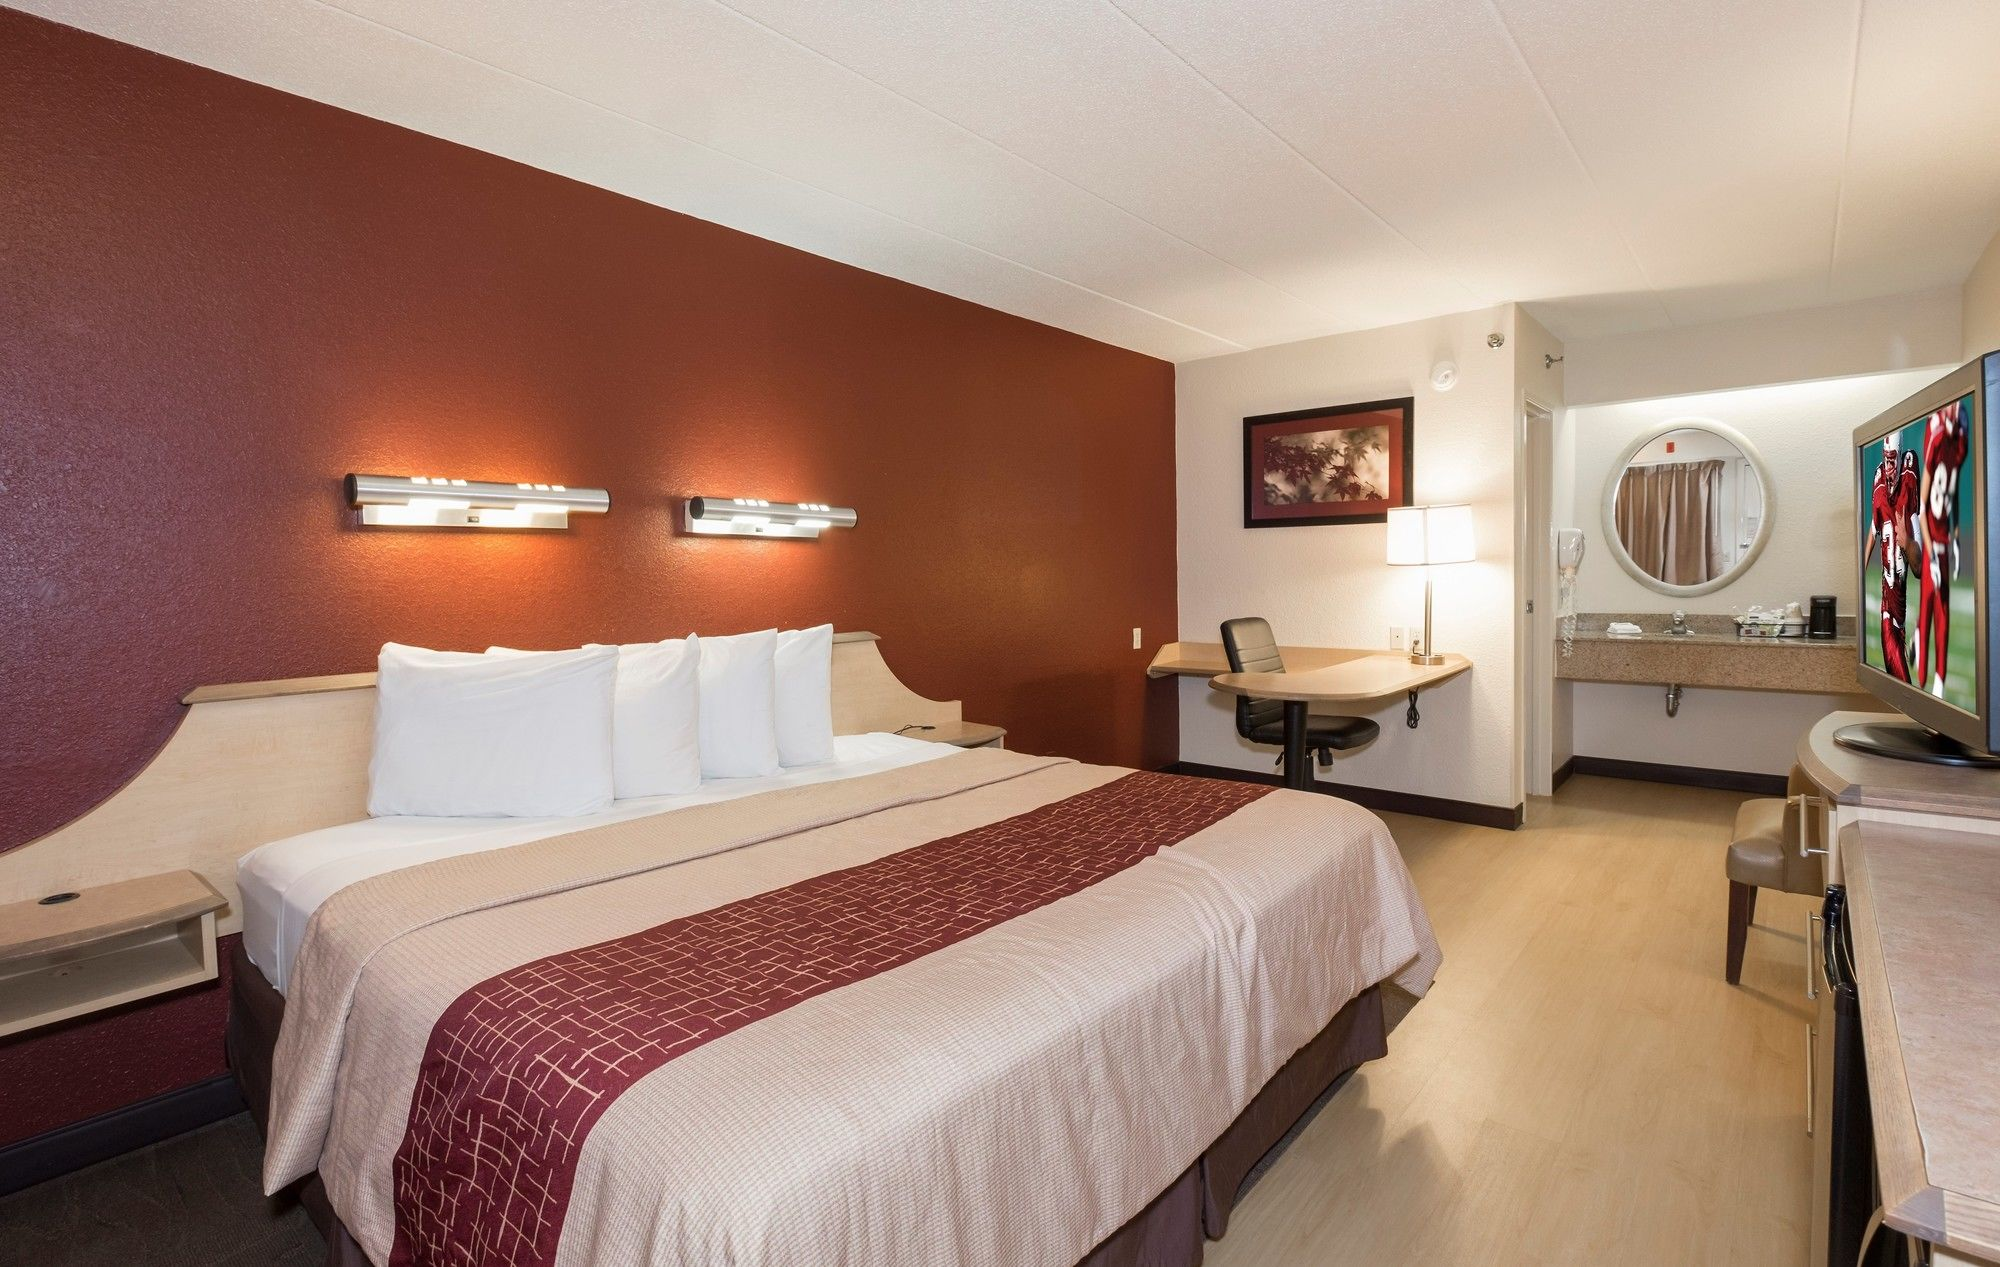 Red Roof Milford is renovated with all new rooms, a conference room, and an elevator. All rooms offer free WiFi and a flat screen TV. Experience our coffeehouse-style coffee and tea before exploring the nearby attractions.